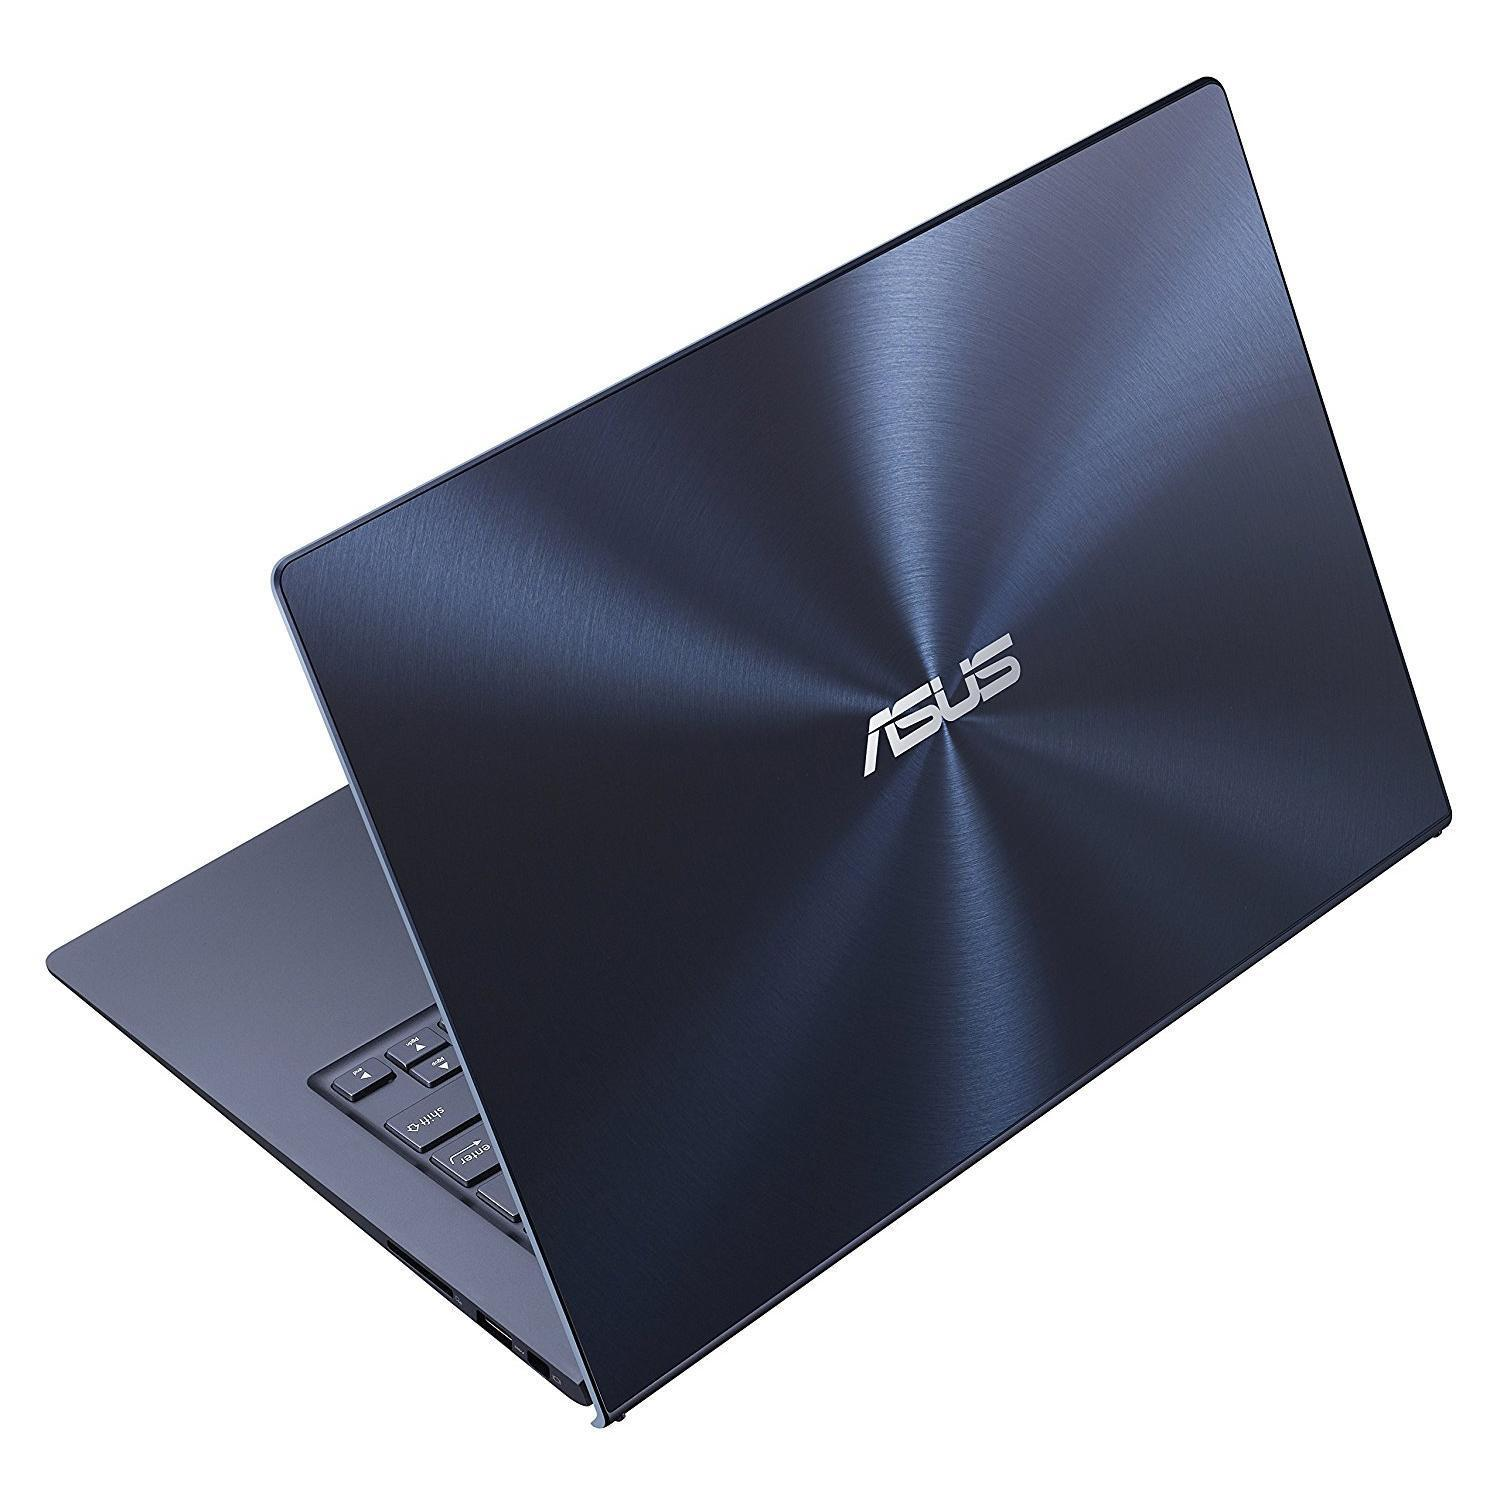 "Asus ZenBook 13,3"" Core i7-4558U 2,8 GHz  - SSD 512 GB - RAM 8 GB"